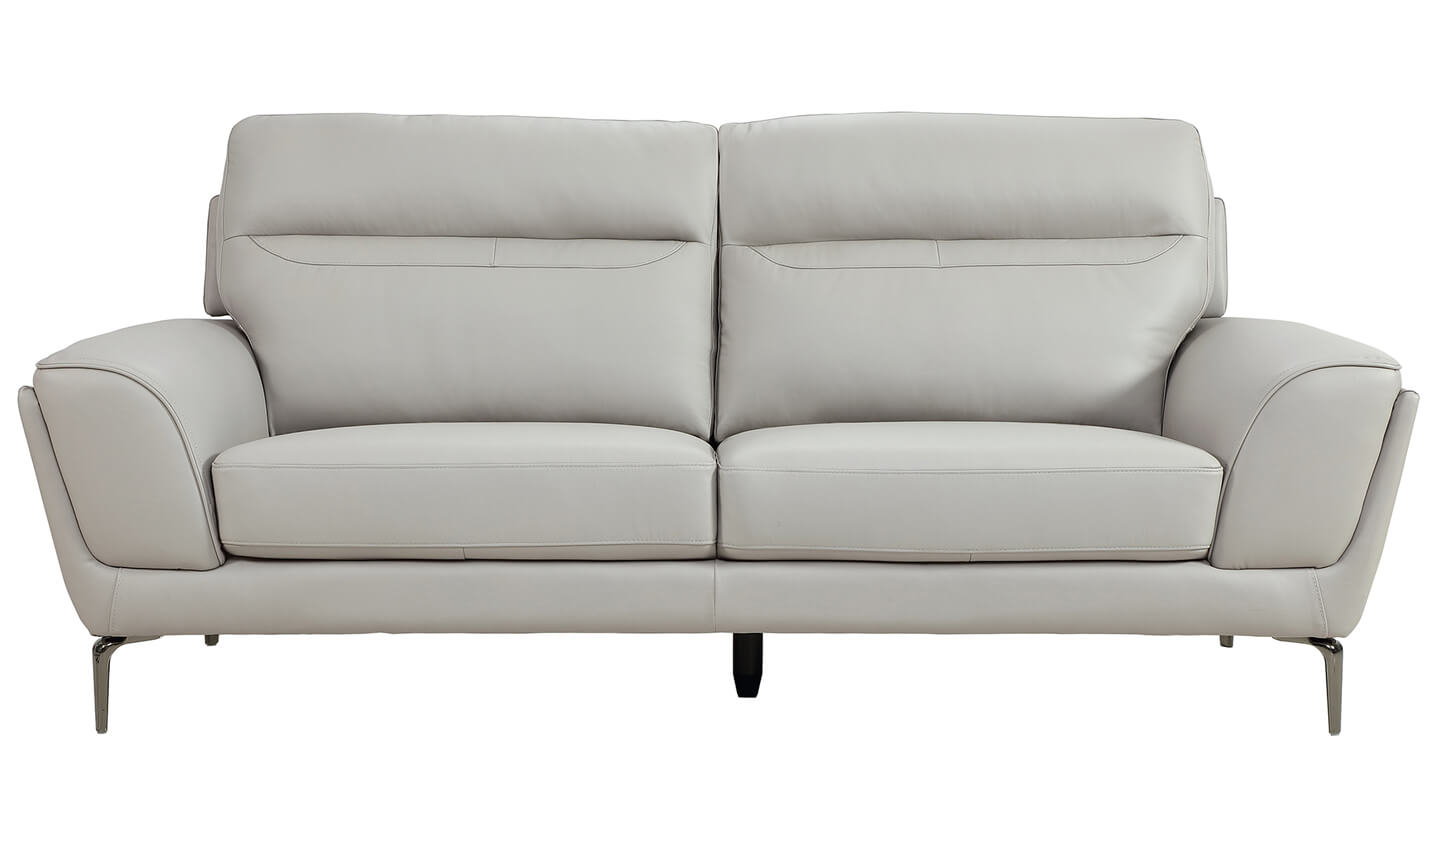 Vitalia 3 Seater Light Grey